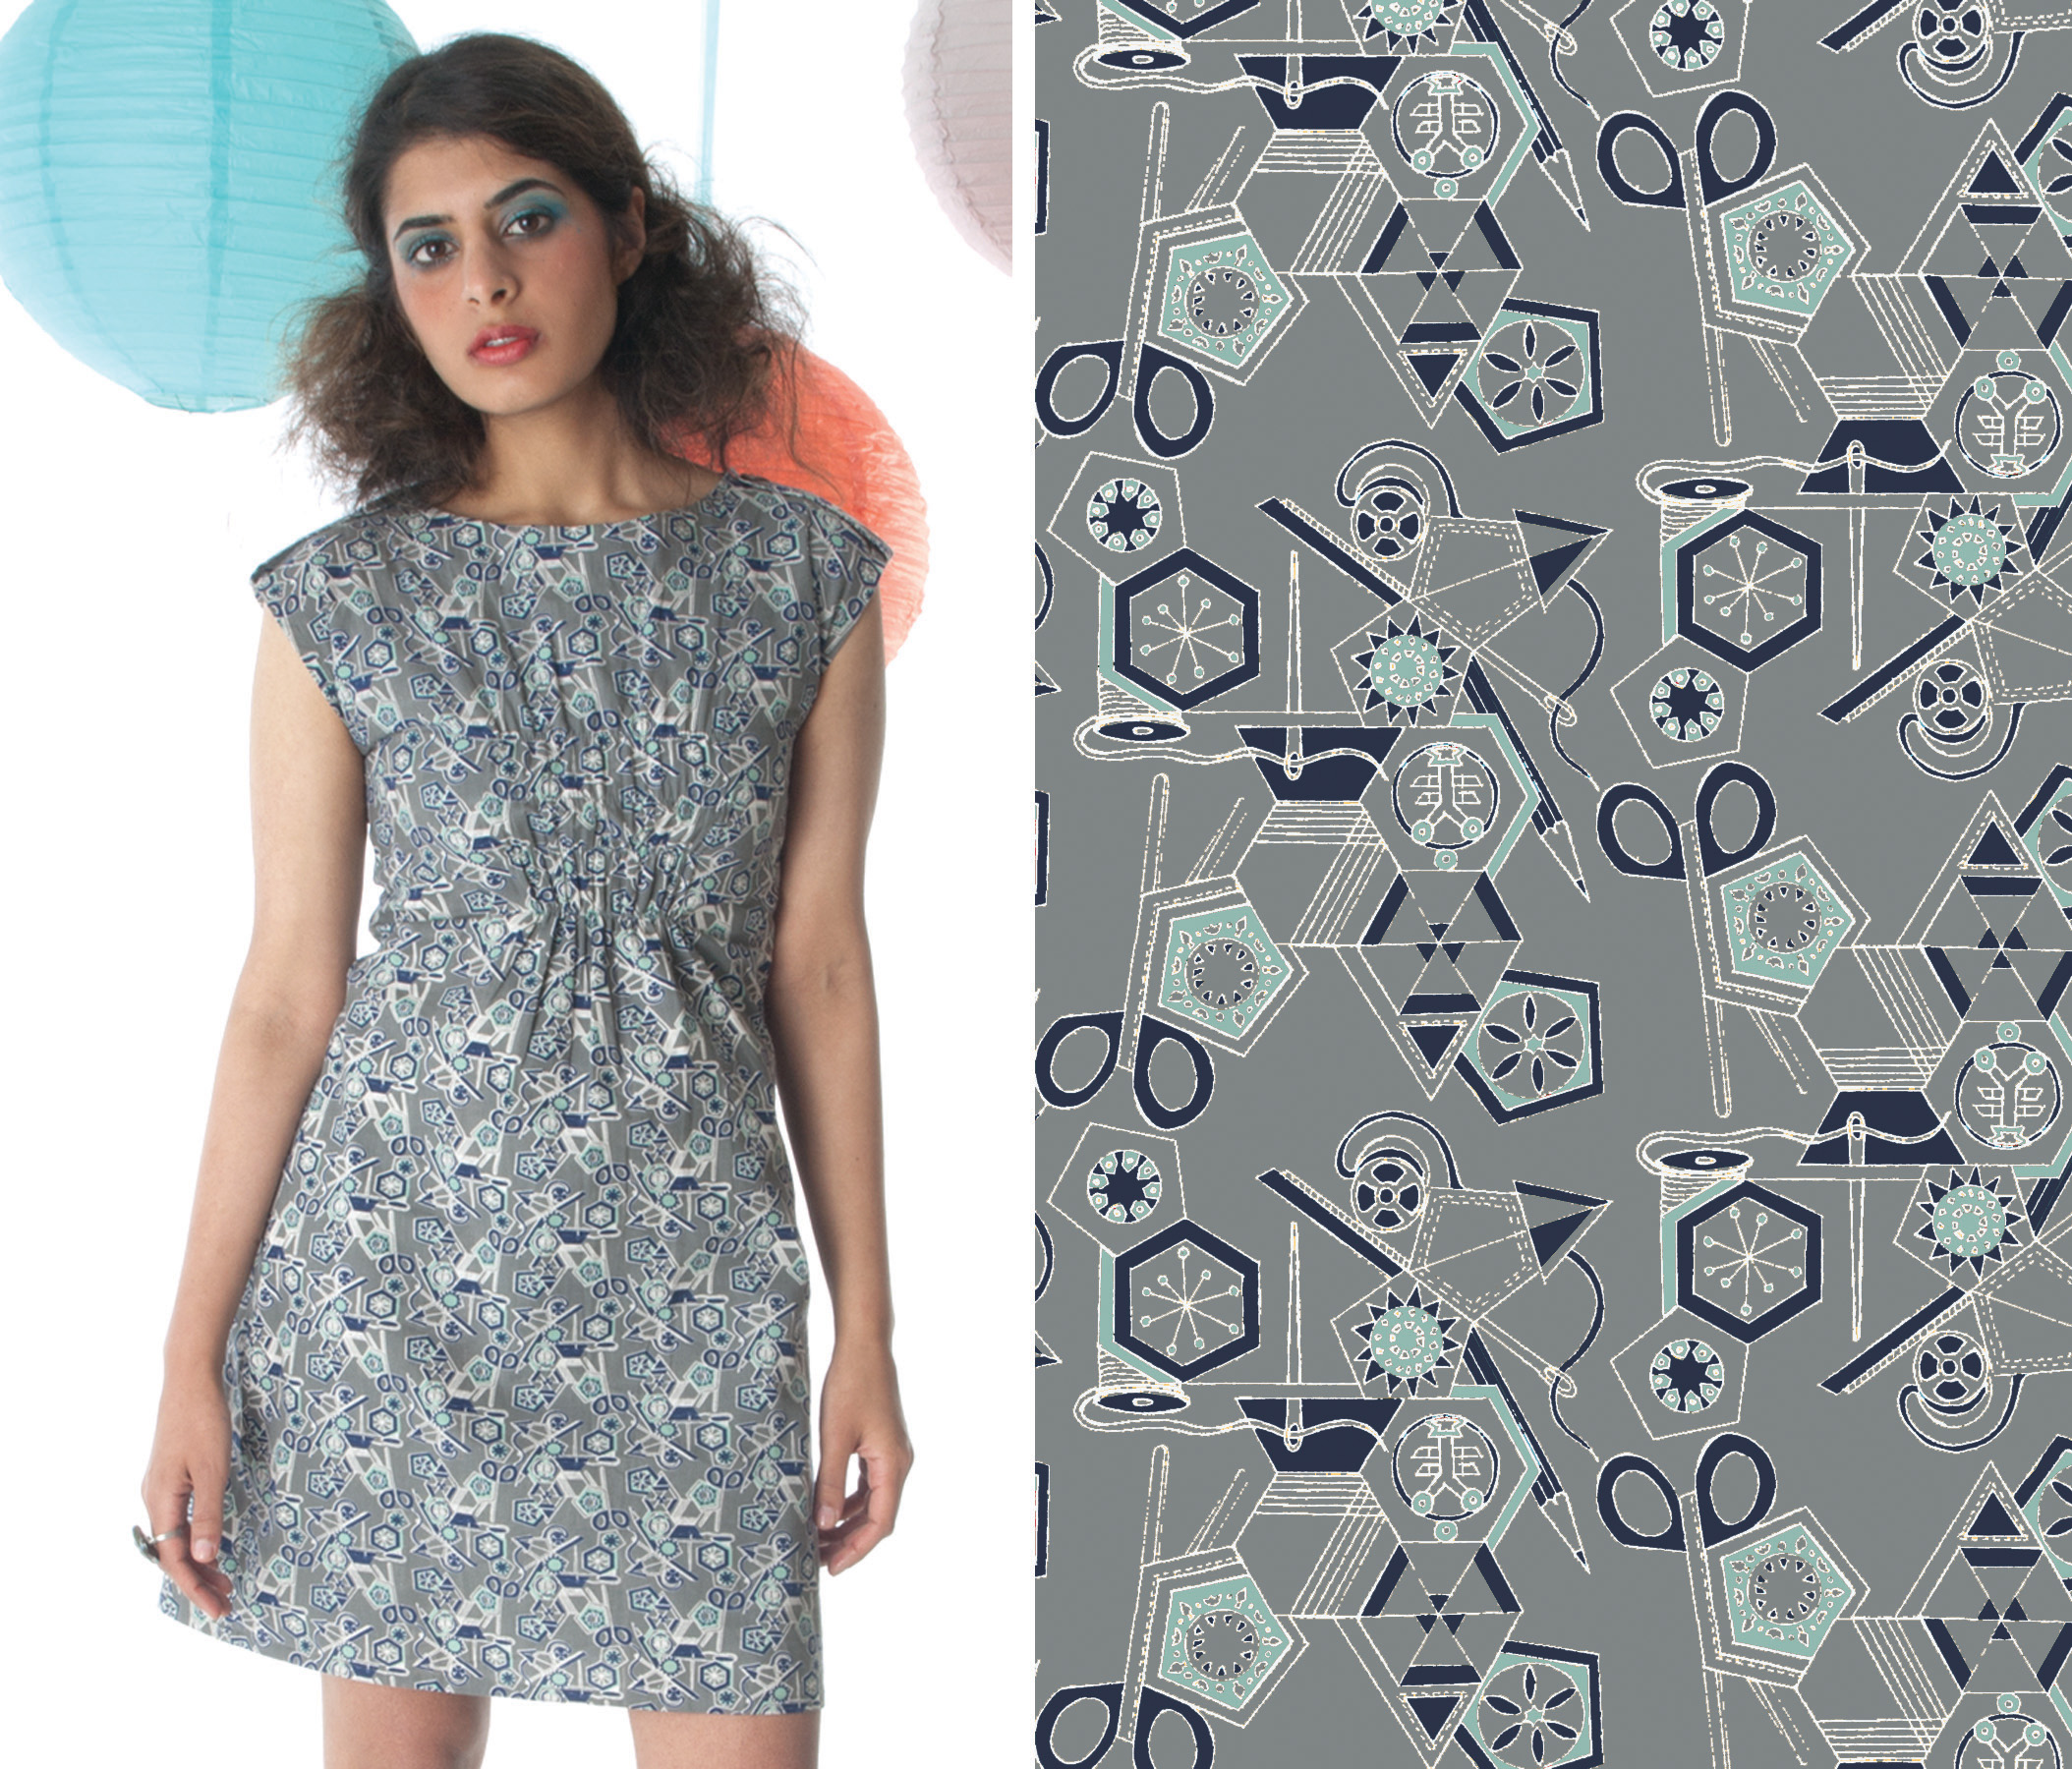 Tools of the Trade print - Textile design by Shifra Whiteman. Dress by Mata Traders.